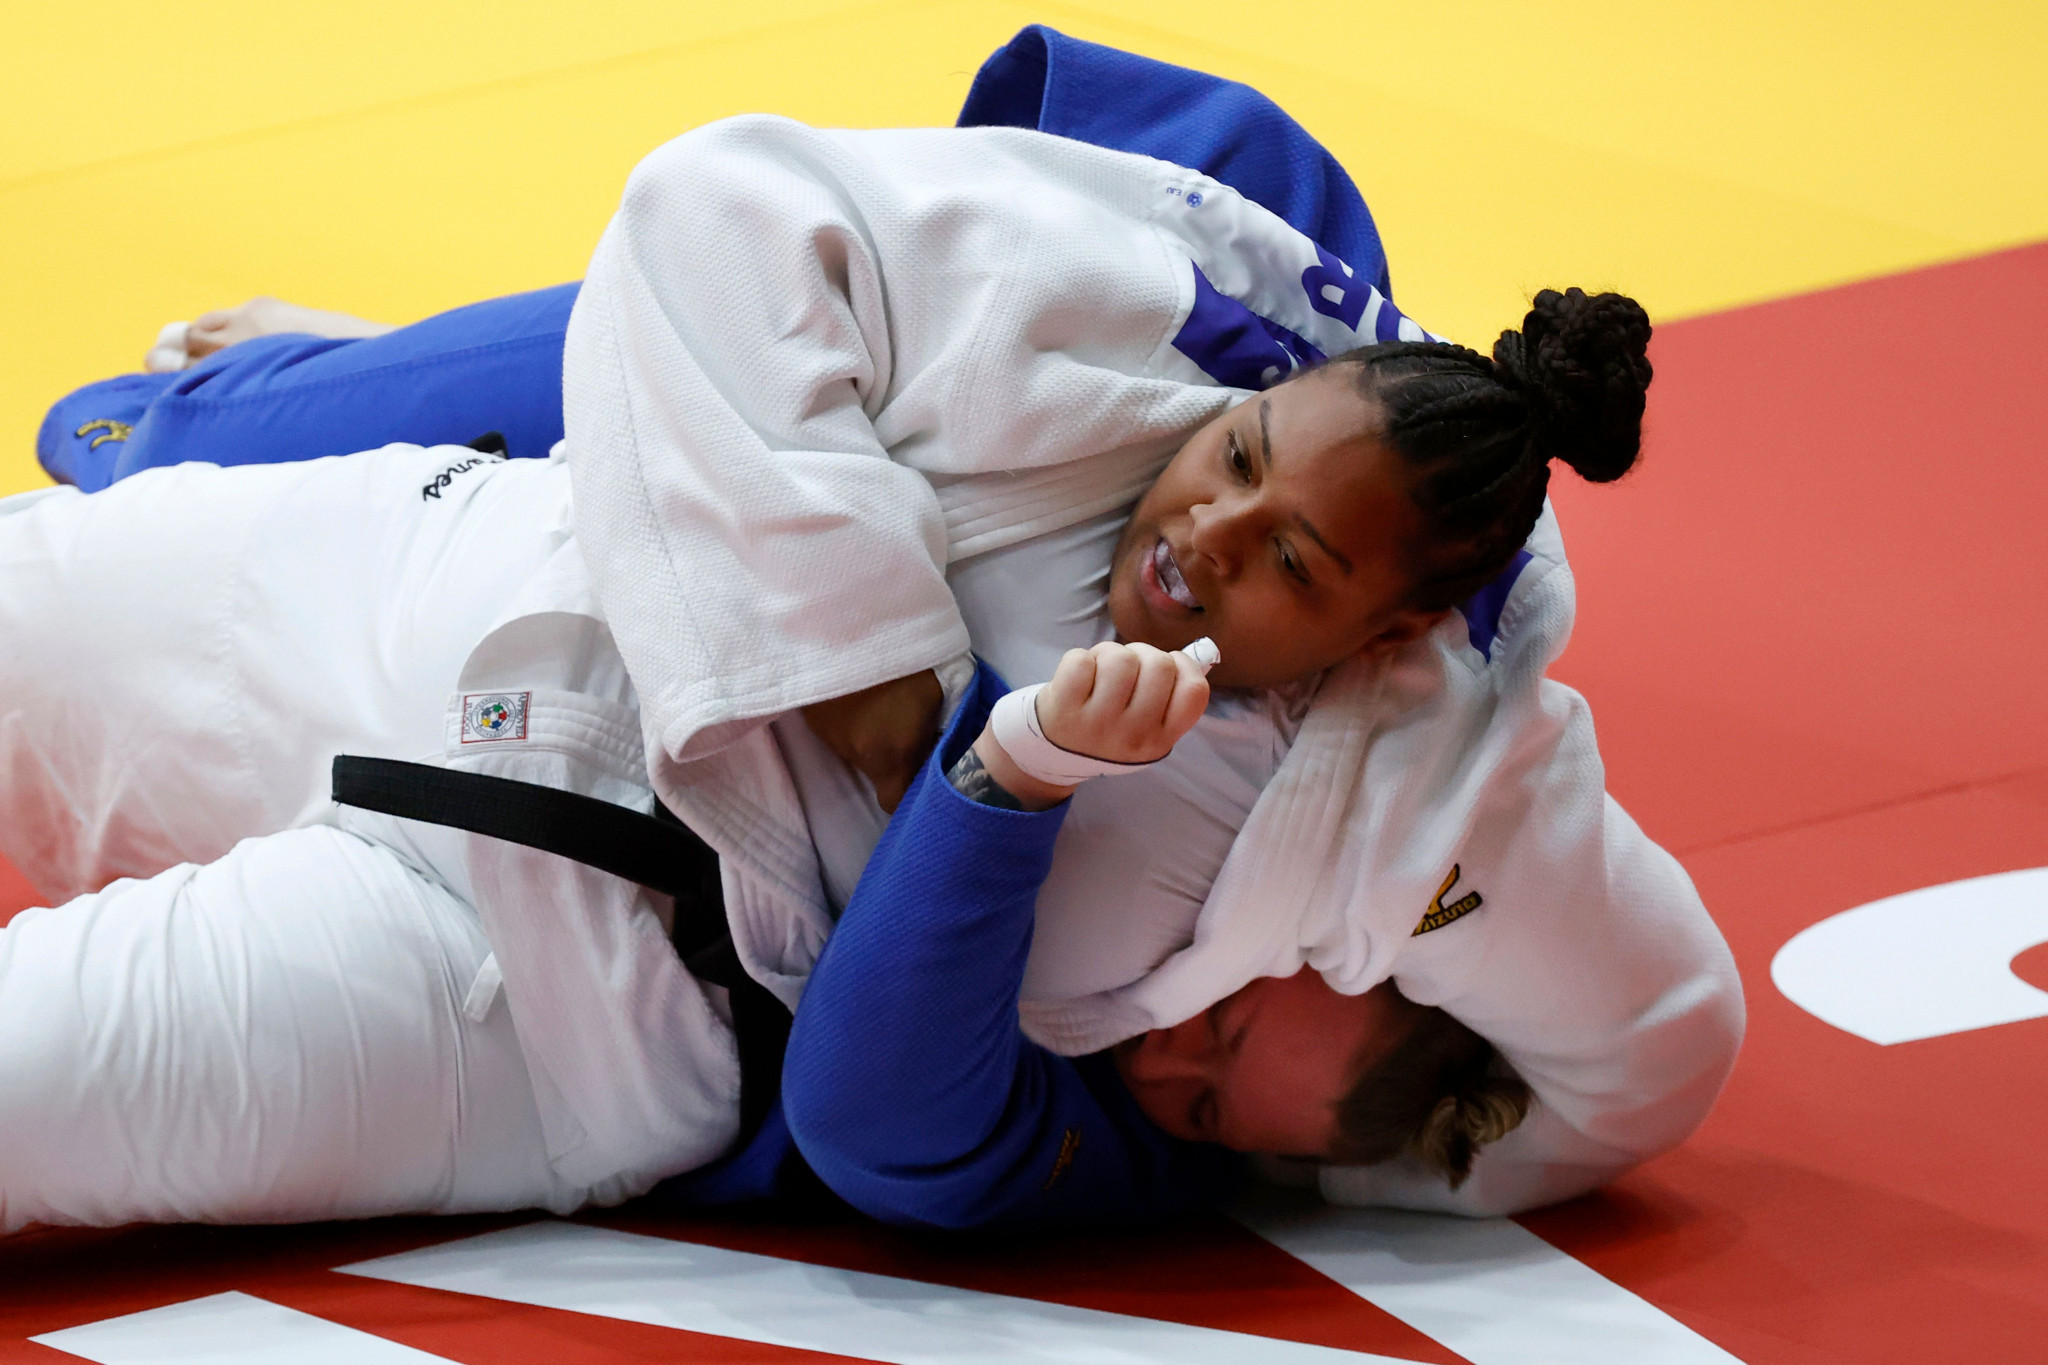 France pick up third gold with quickfire Dicko win to top Tel Aviv Grand Slam medal table